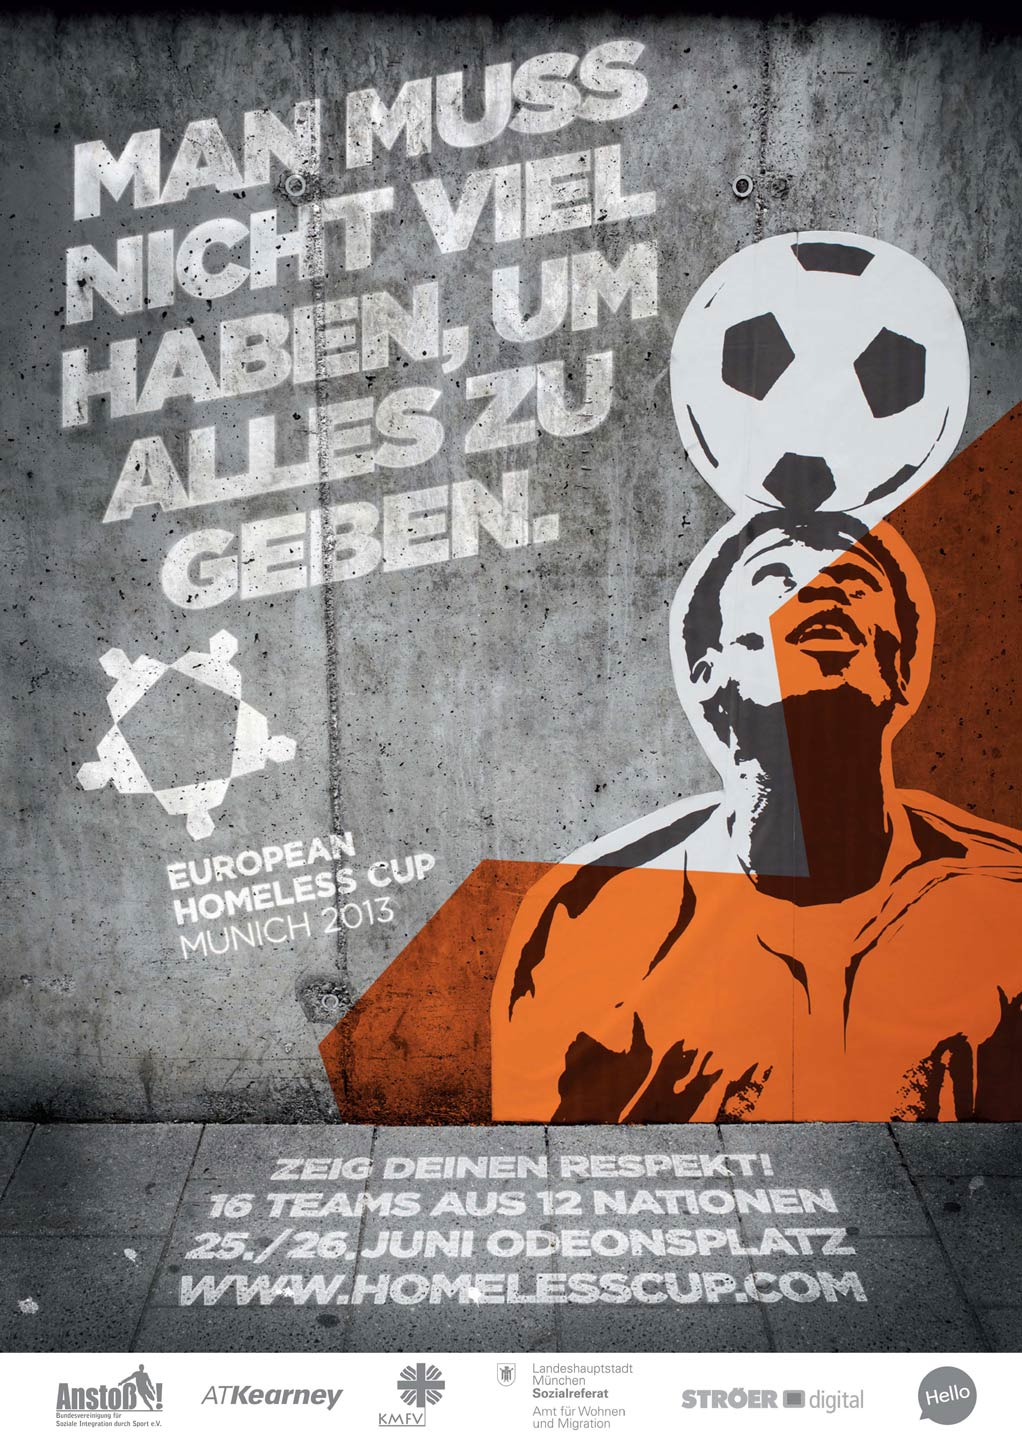 Maximilian_Stengl_Homelesscup_Poster_1440_03